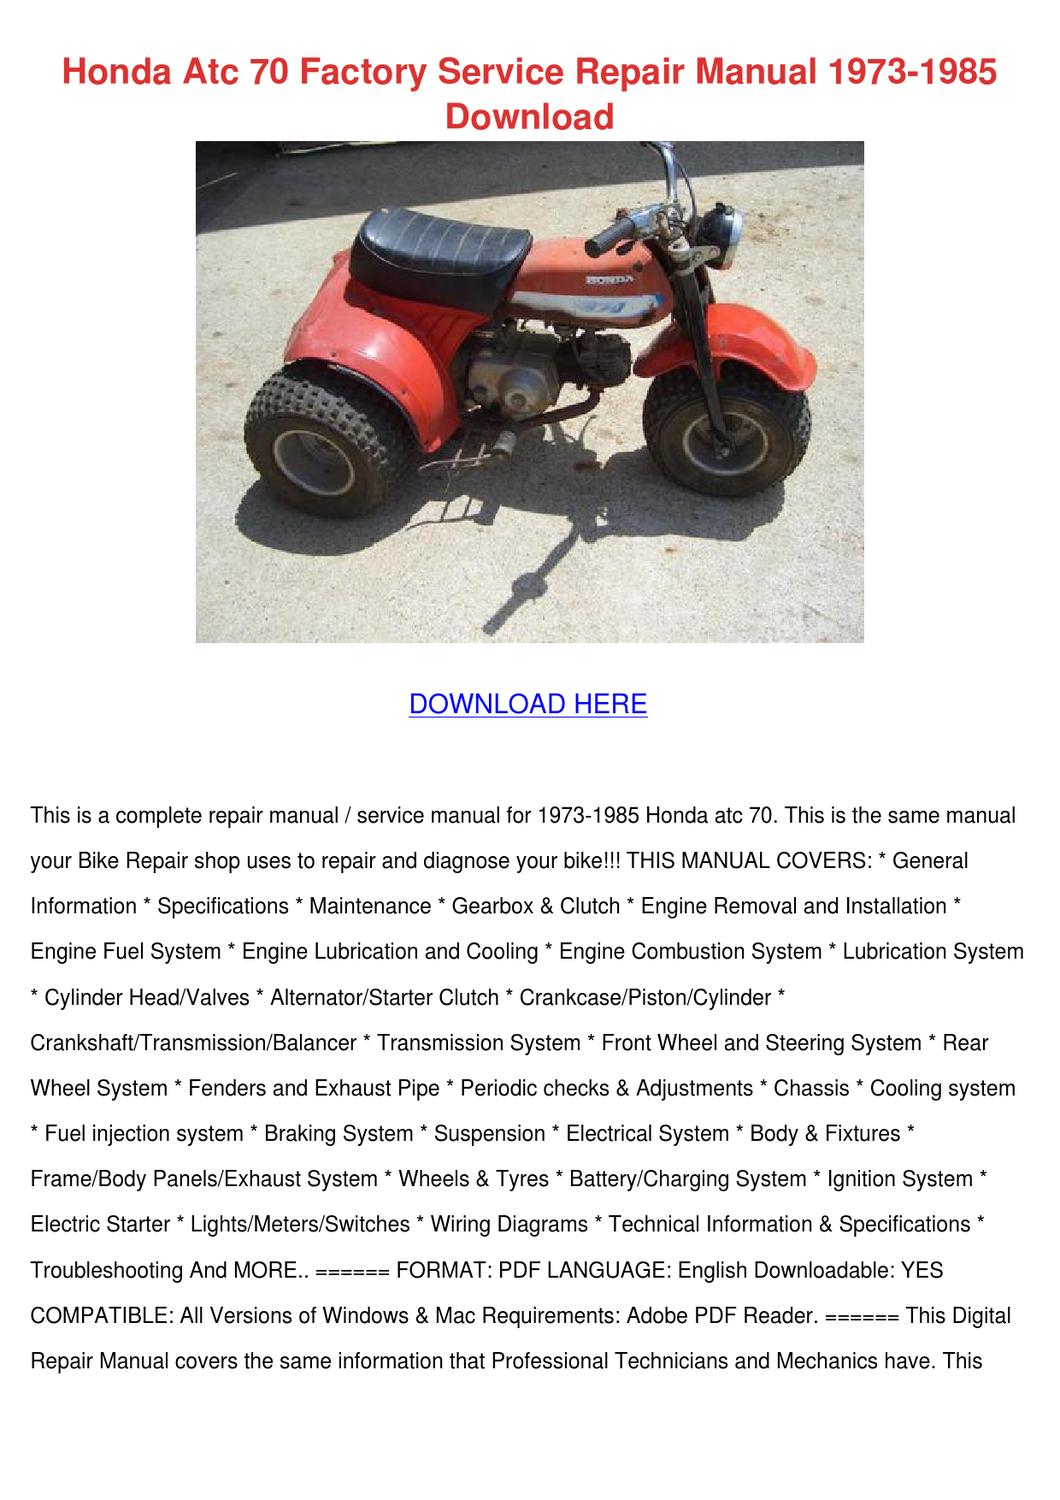 Honda Atc 70 Wiring Diagram from image.isu.pub